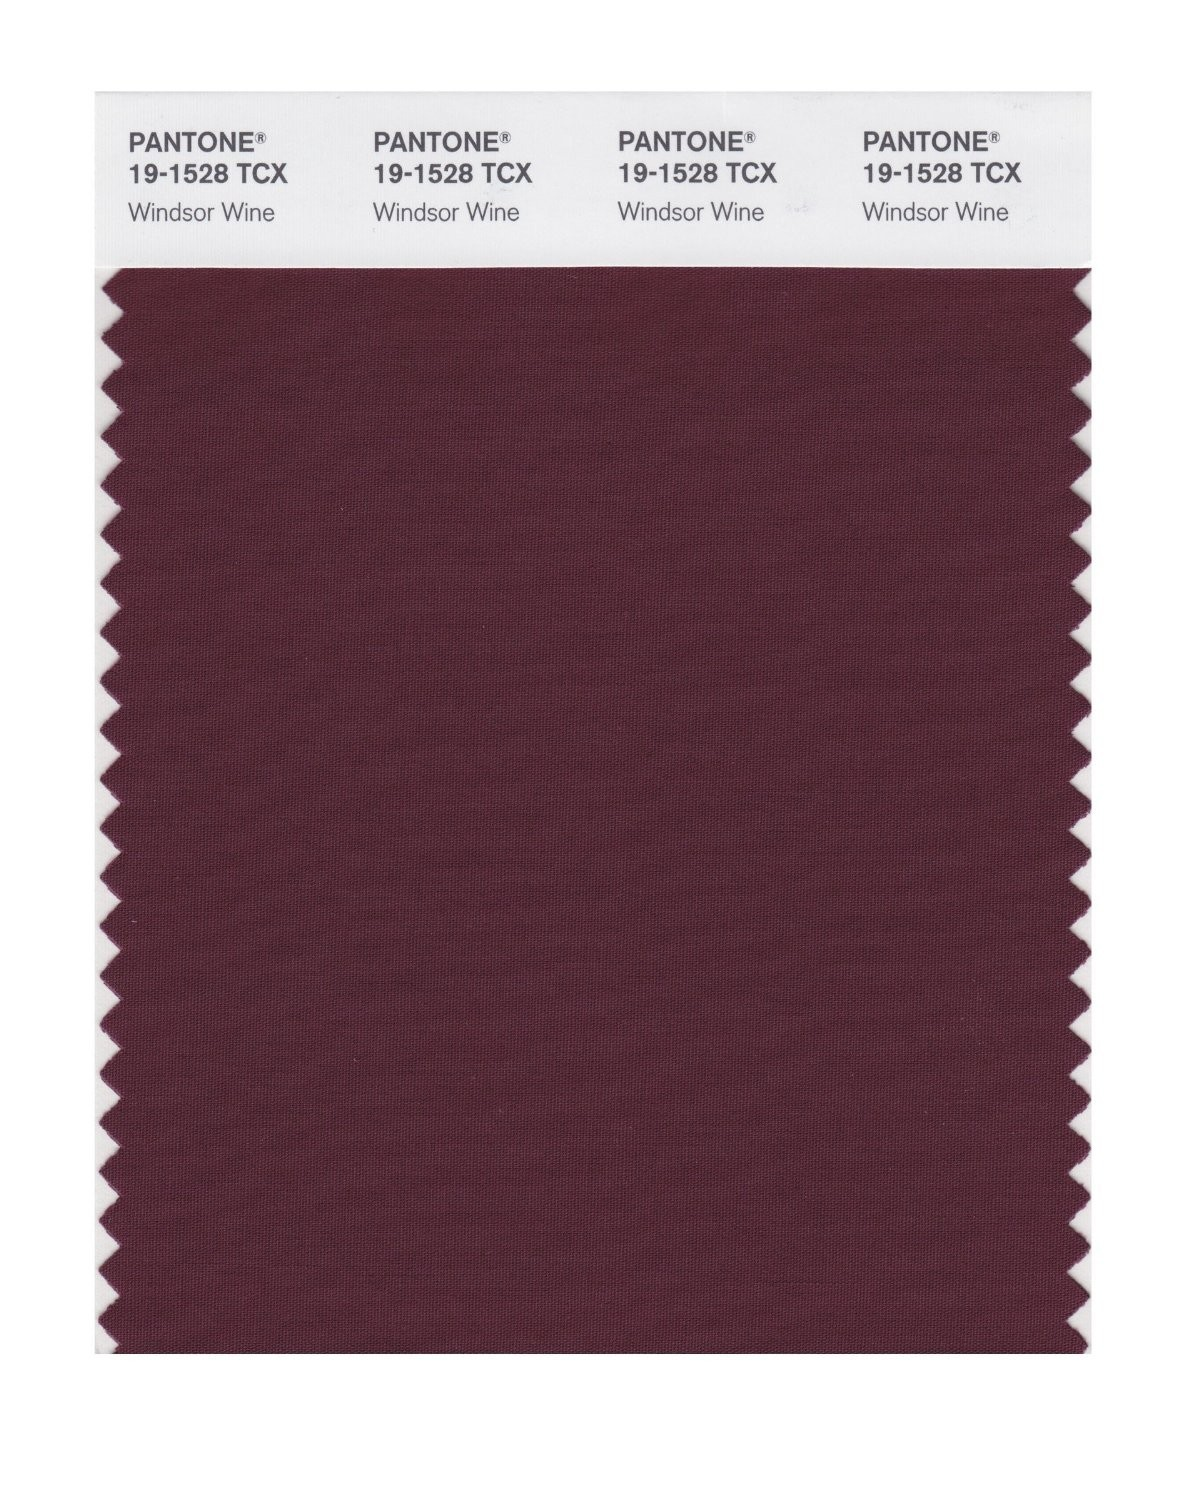 Pantone 19-1528 TCX Swatch Card Windsor Wine